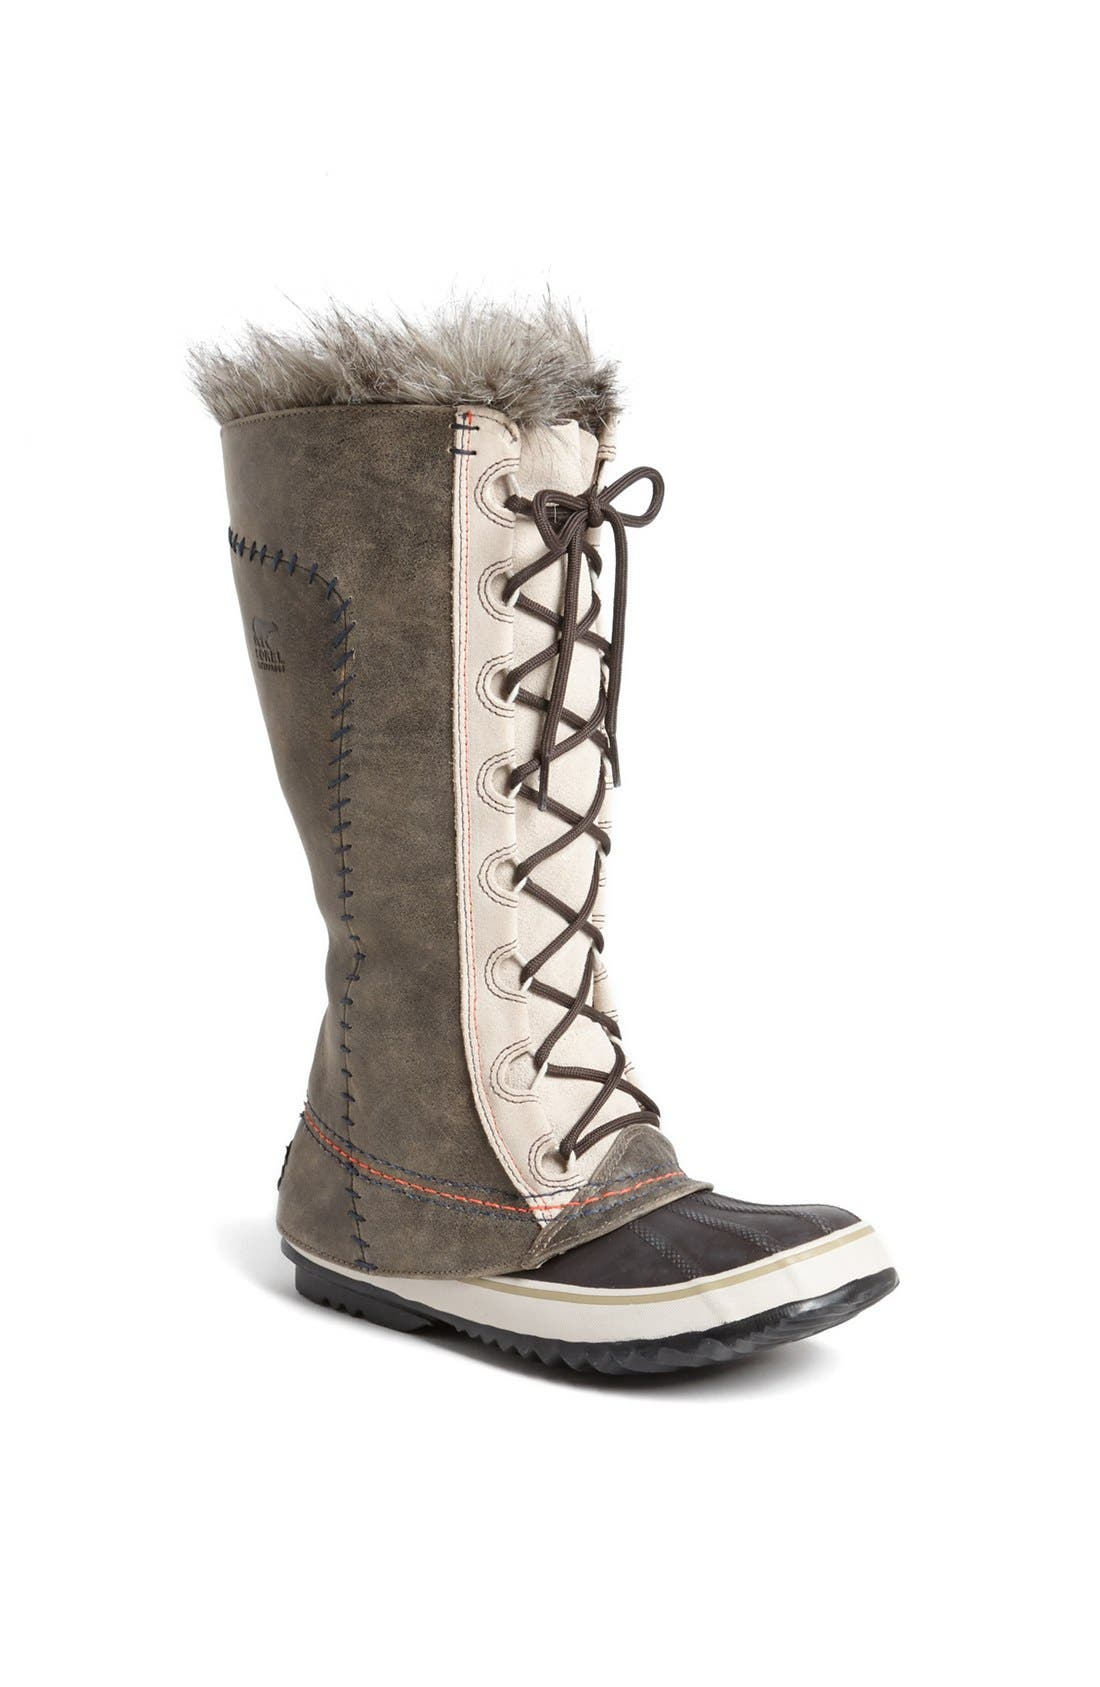 'Cate the Great - Deco' Waterproof Suede Duck Boot,                             Main thumbnail 1, color,                             099